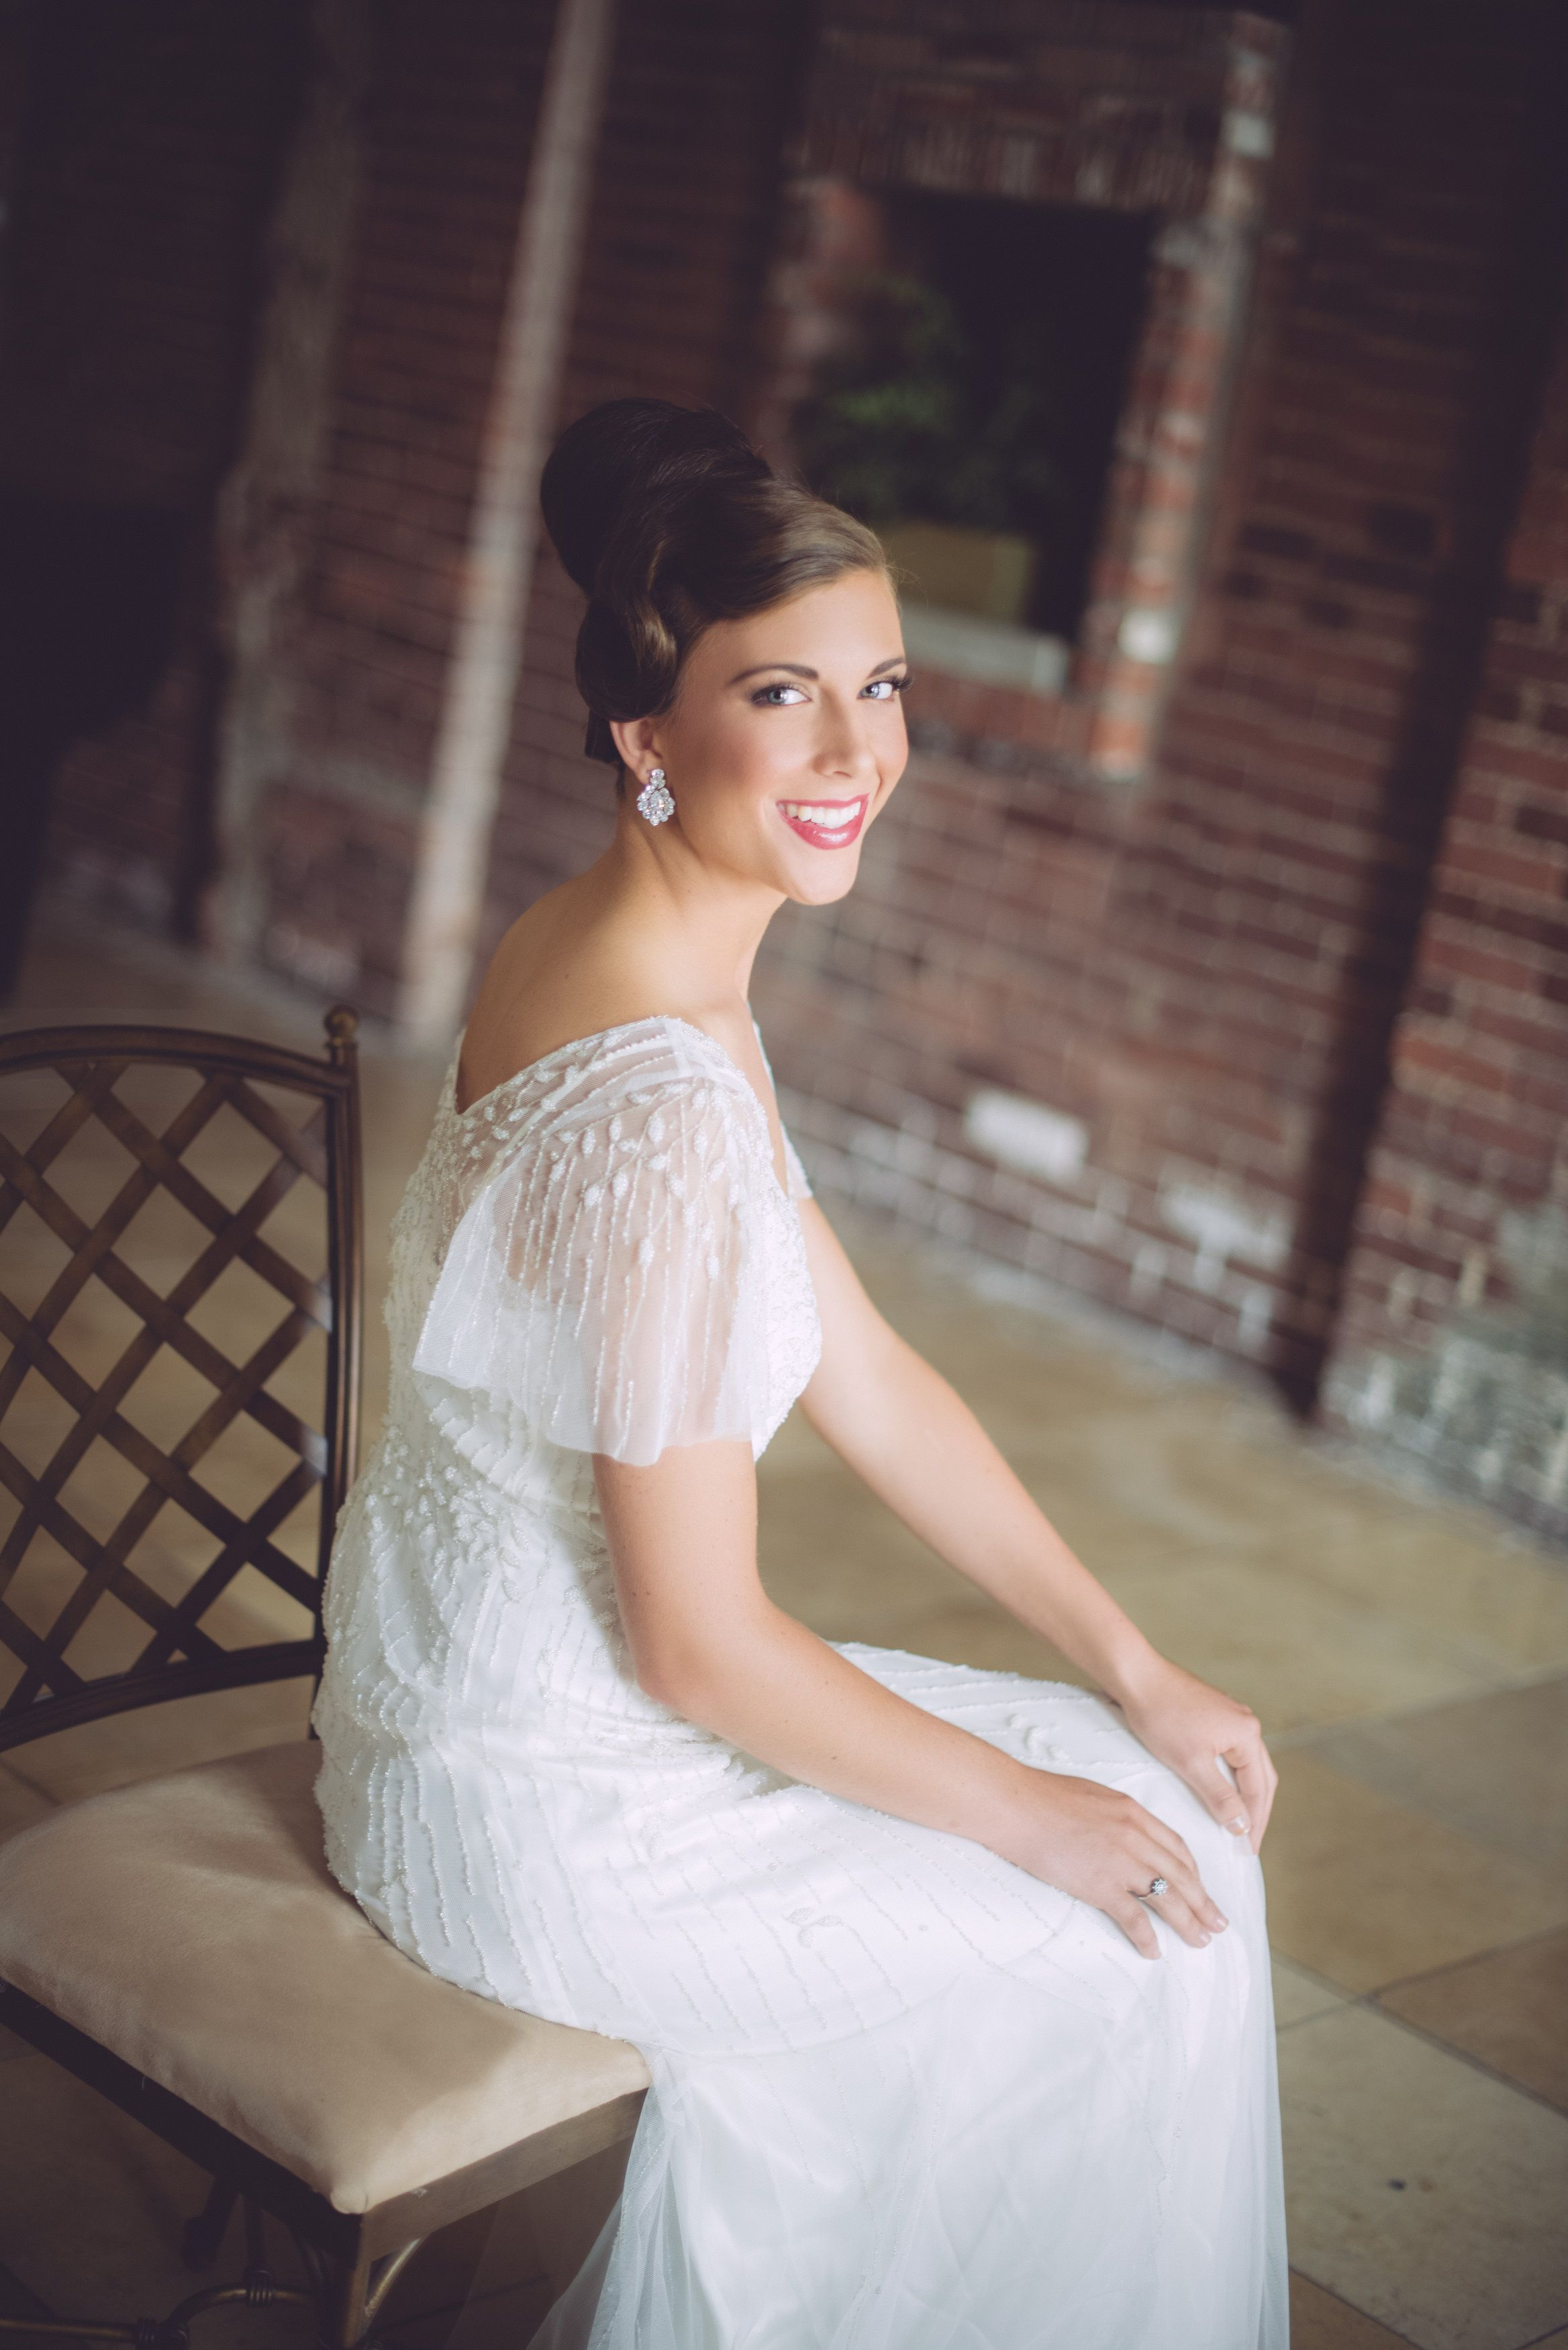 hair by: executive bridal director courtney and bridal team members